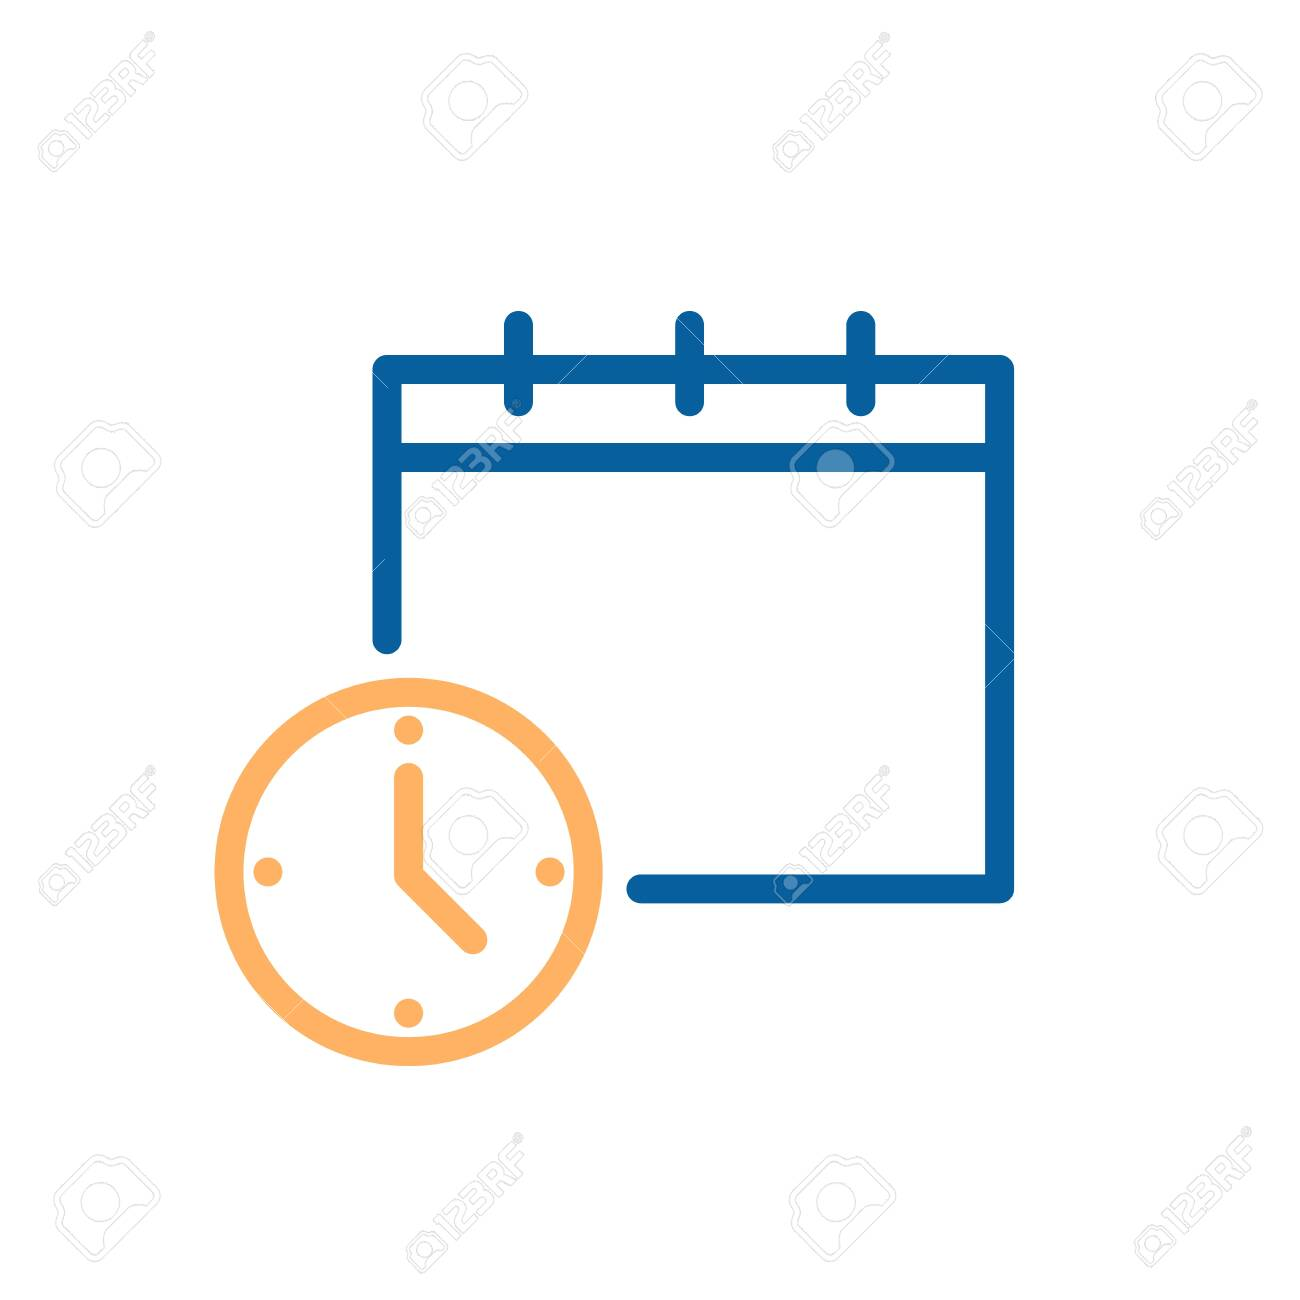 Clock and calendar simple icon. Vector illustration for business, schedule, office, routine, delivery days, deadline etc - 126216873